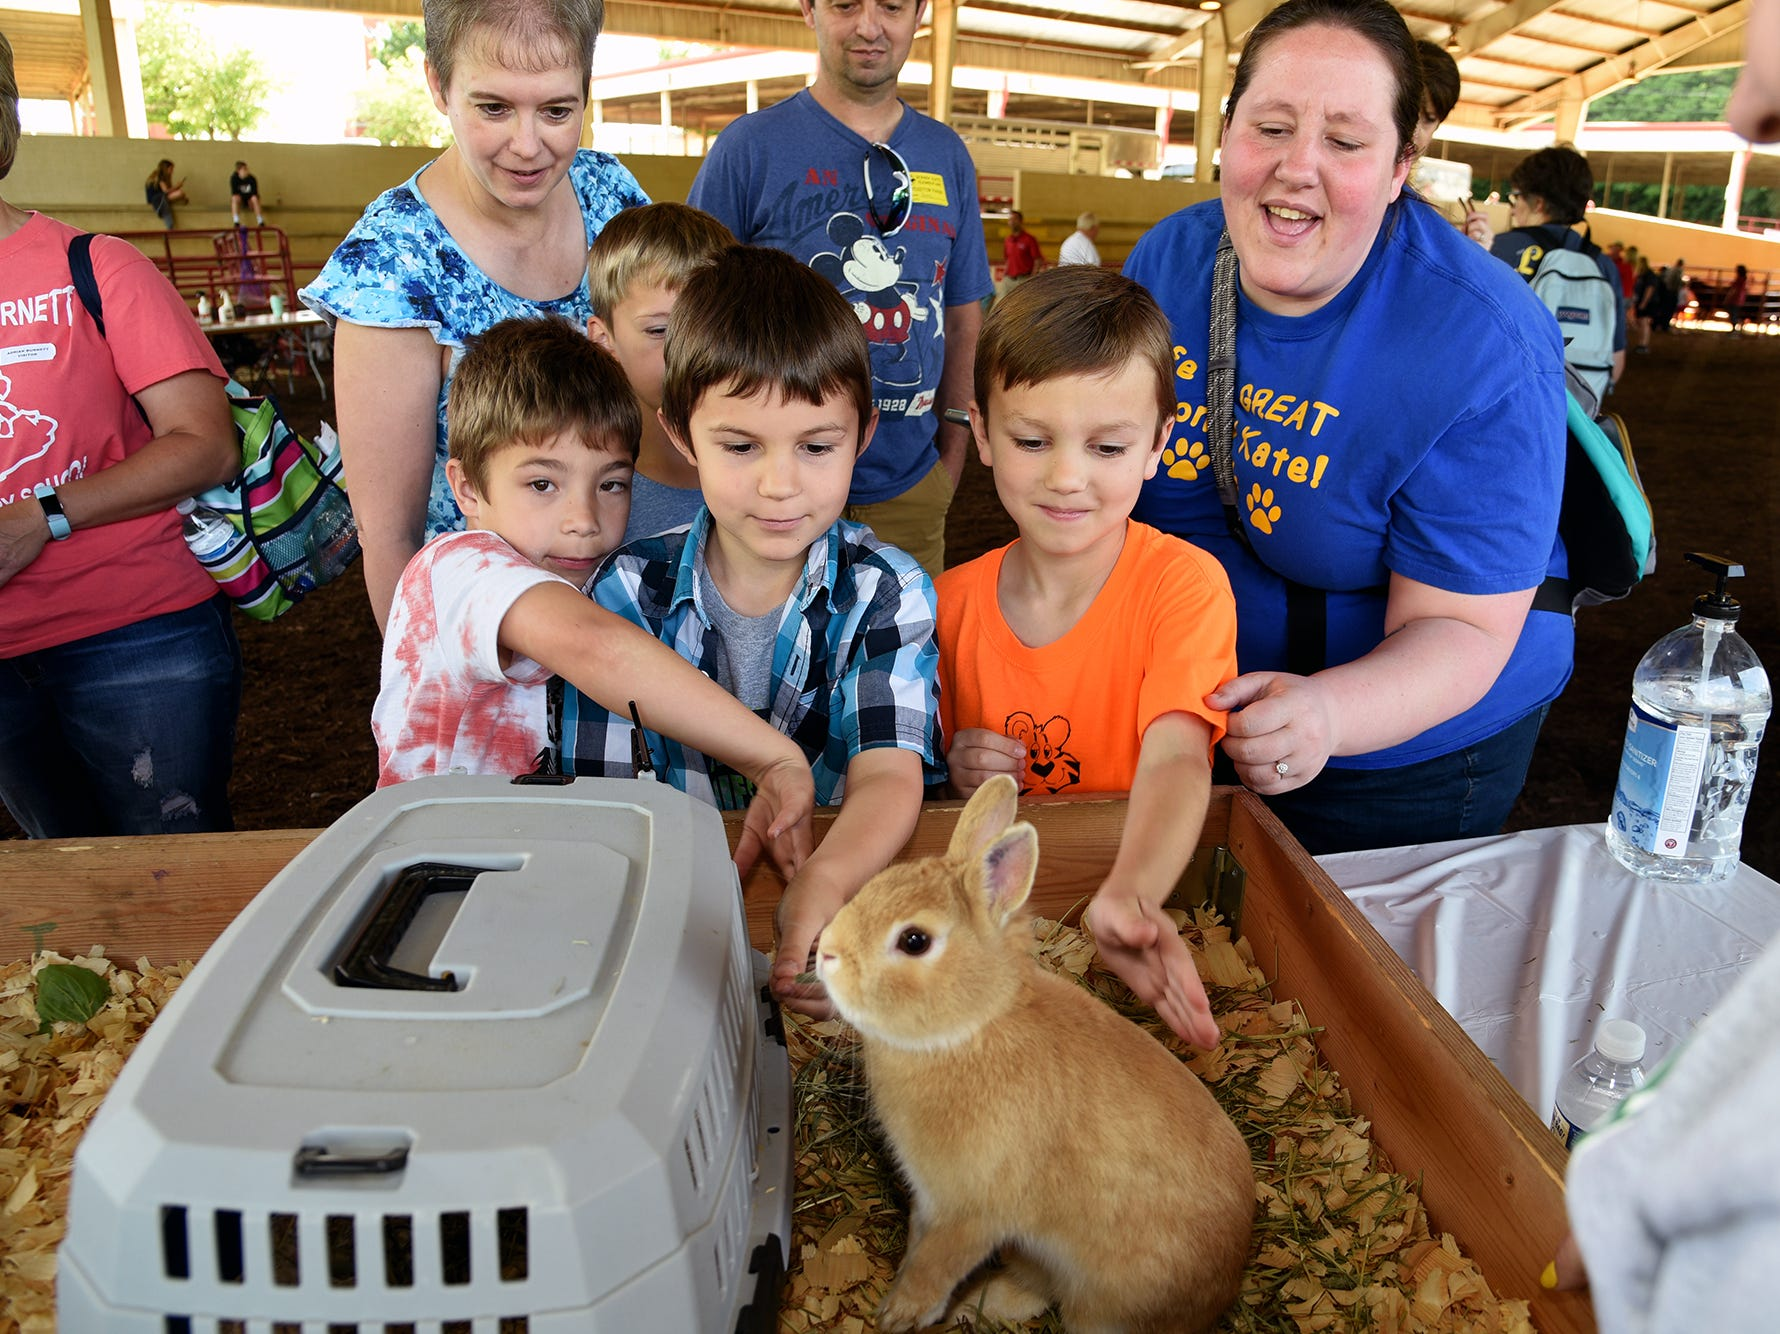 Schoolchildren crowd in to pet a Netherlands dwarf rabbit, part of Farm Day at Chilhowee Park. Over 600 Knox County School children attended the annual Knox County Farm Bureau Ag in the Classroom Farm Day at Chilhowee Park Tuesday, May 7, 2019.